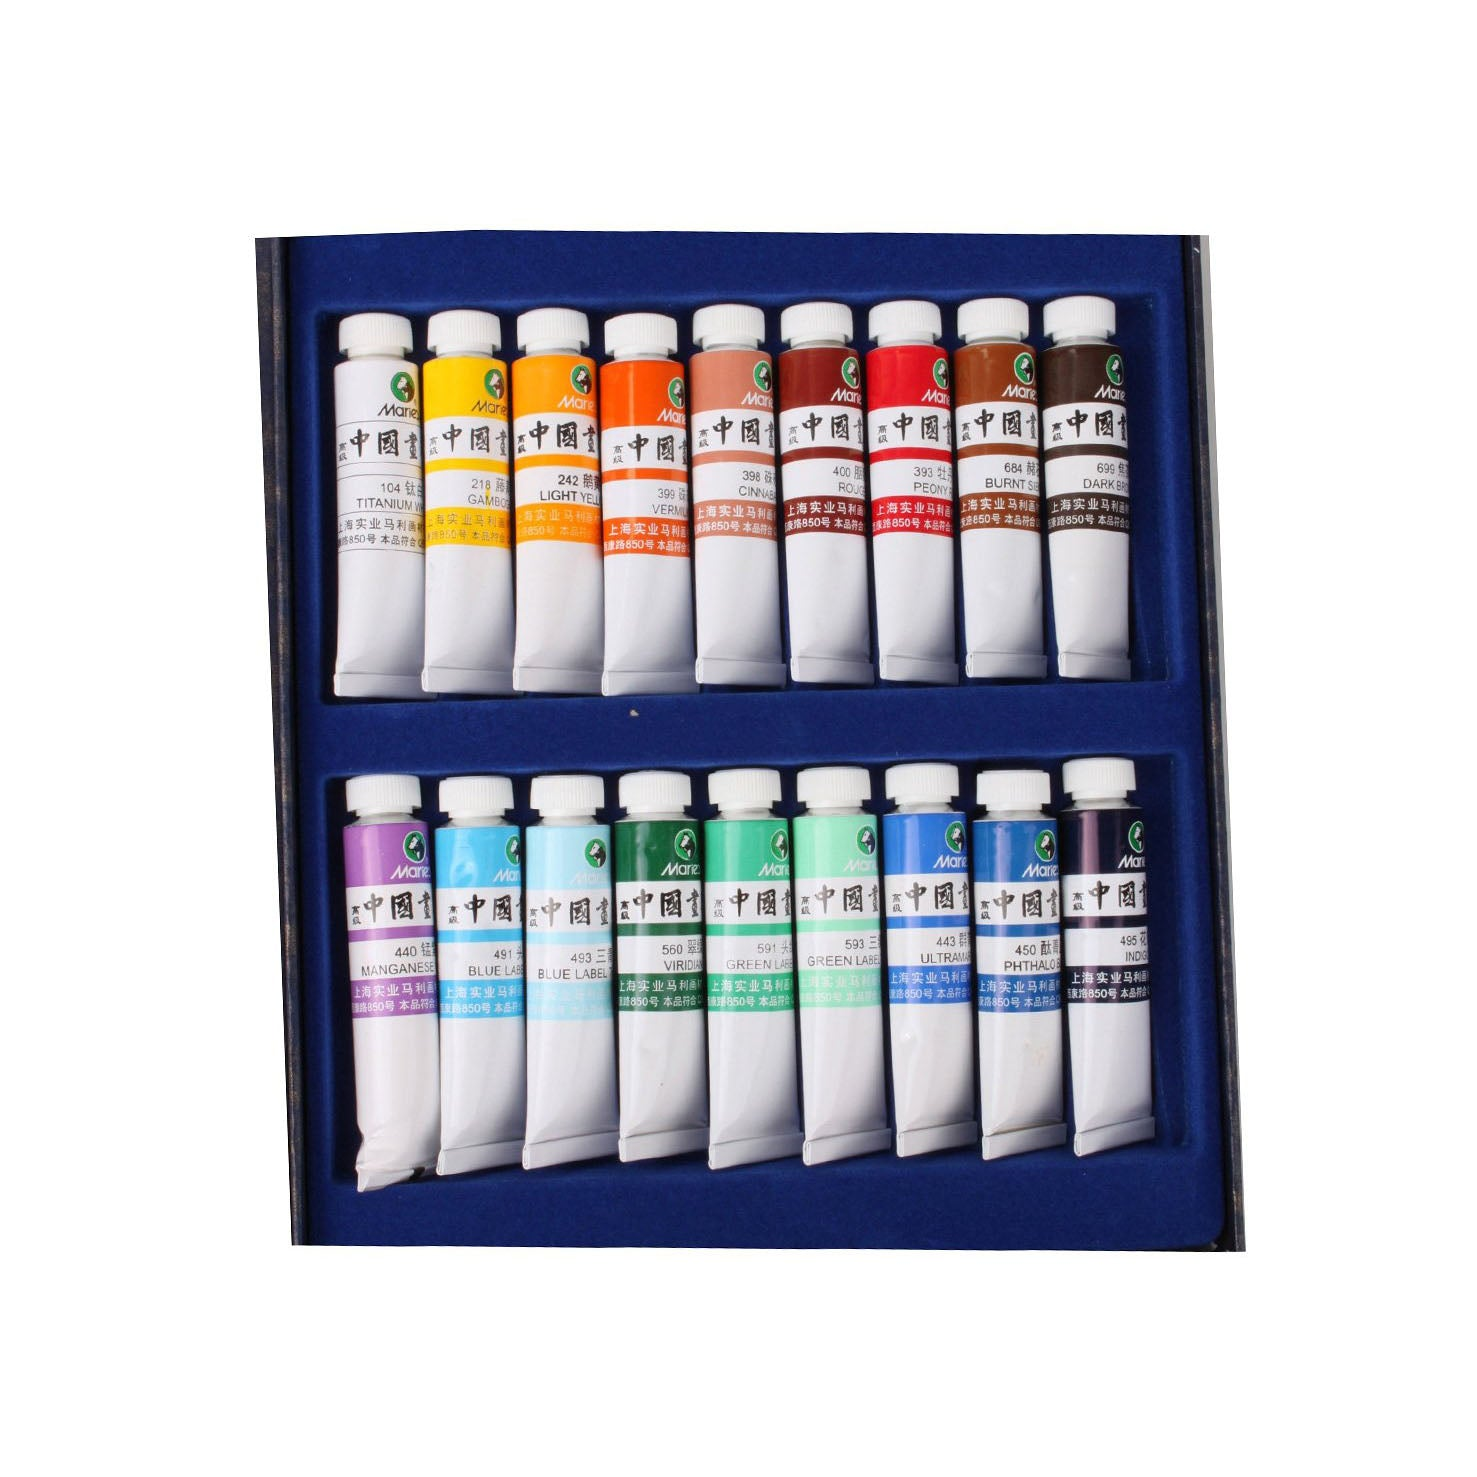 Premium Sumi-e Colors for Calligraphy Writing, Sumi-e and Fineline Painting